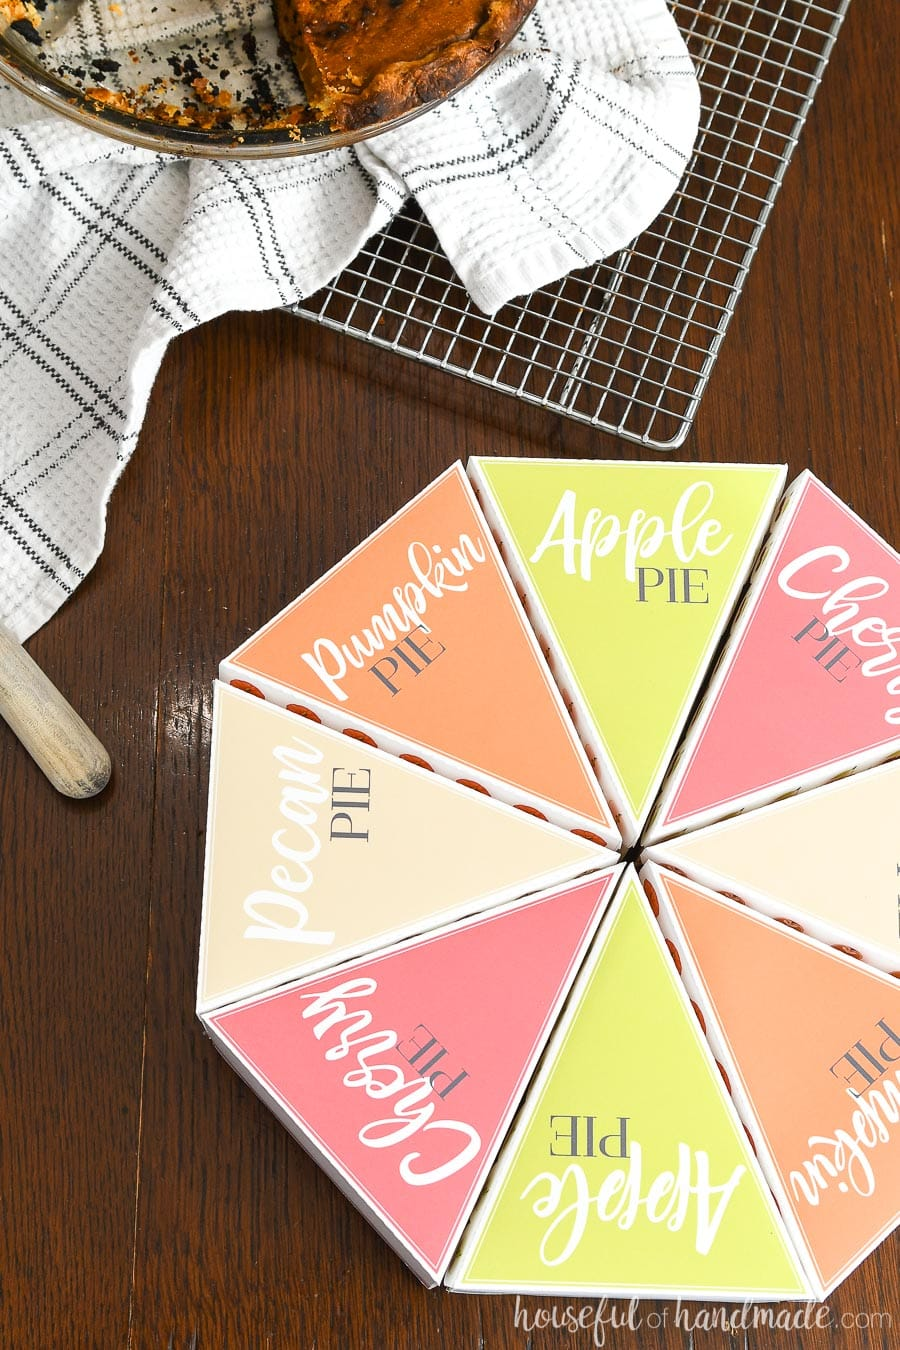 Eight printable leftover pie boxes, each with a different pie name (pecan pie, pumpkin pie, cherry pie, and apple pie).